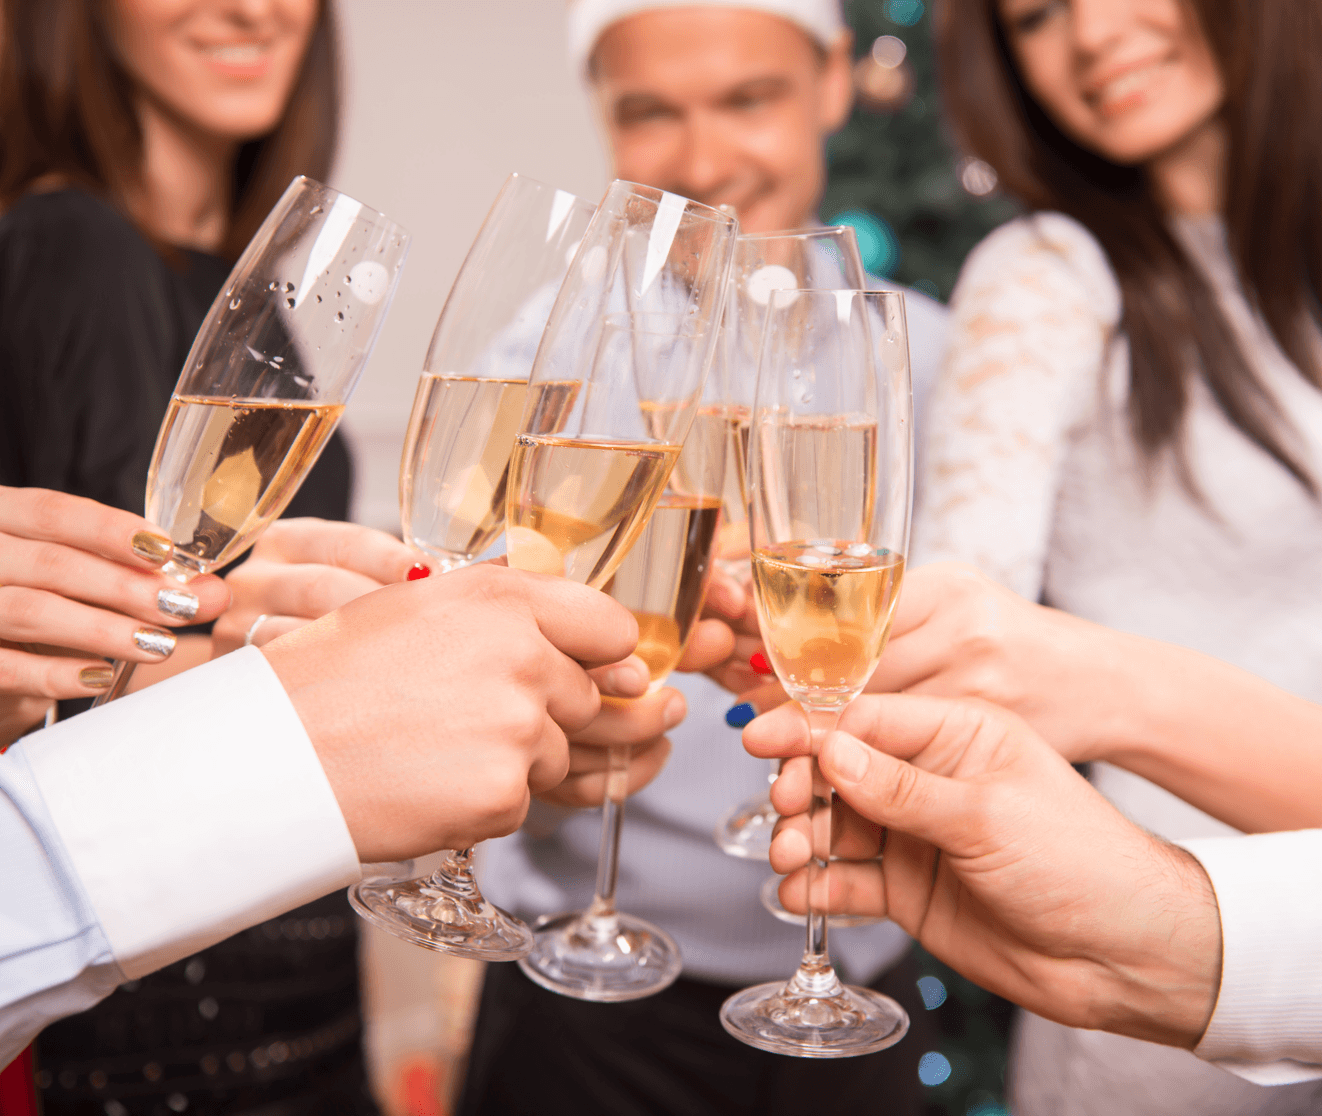 7 Fun Ways to Celebrate New Years at Home Champagne Image